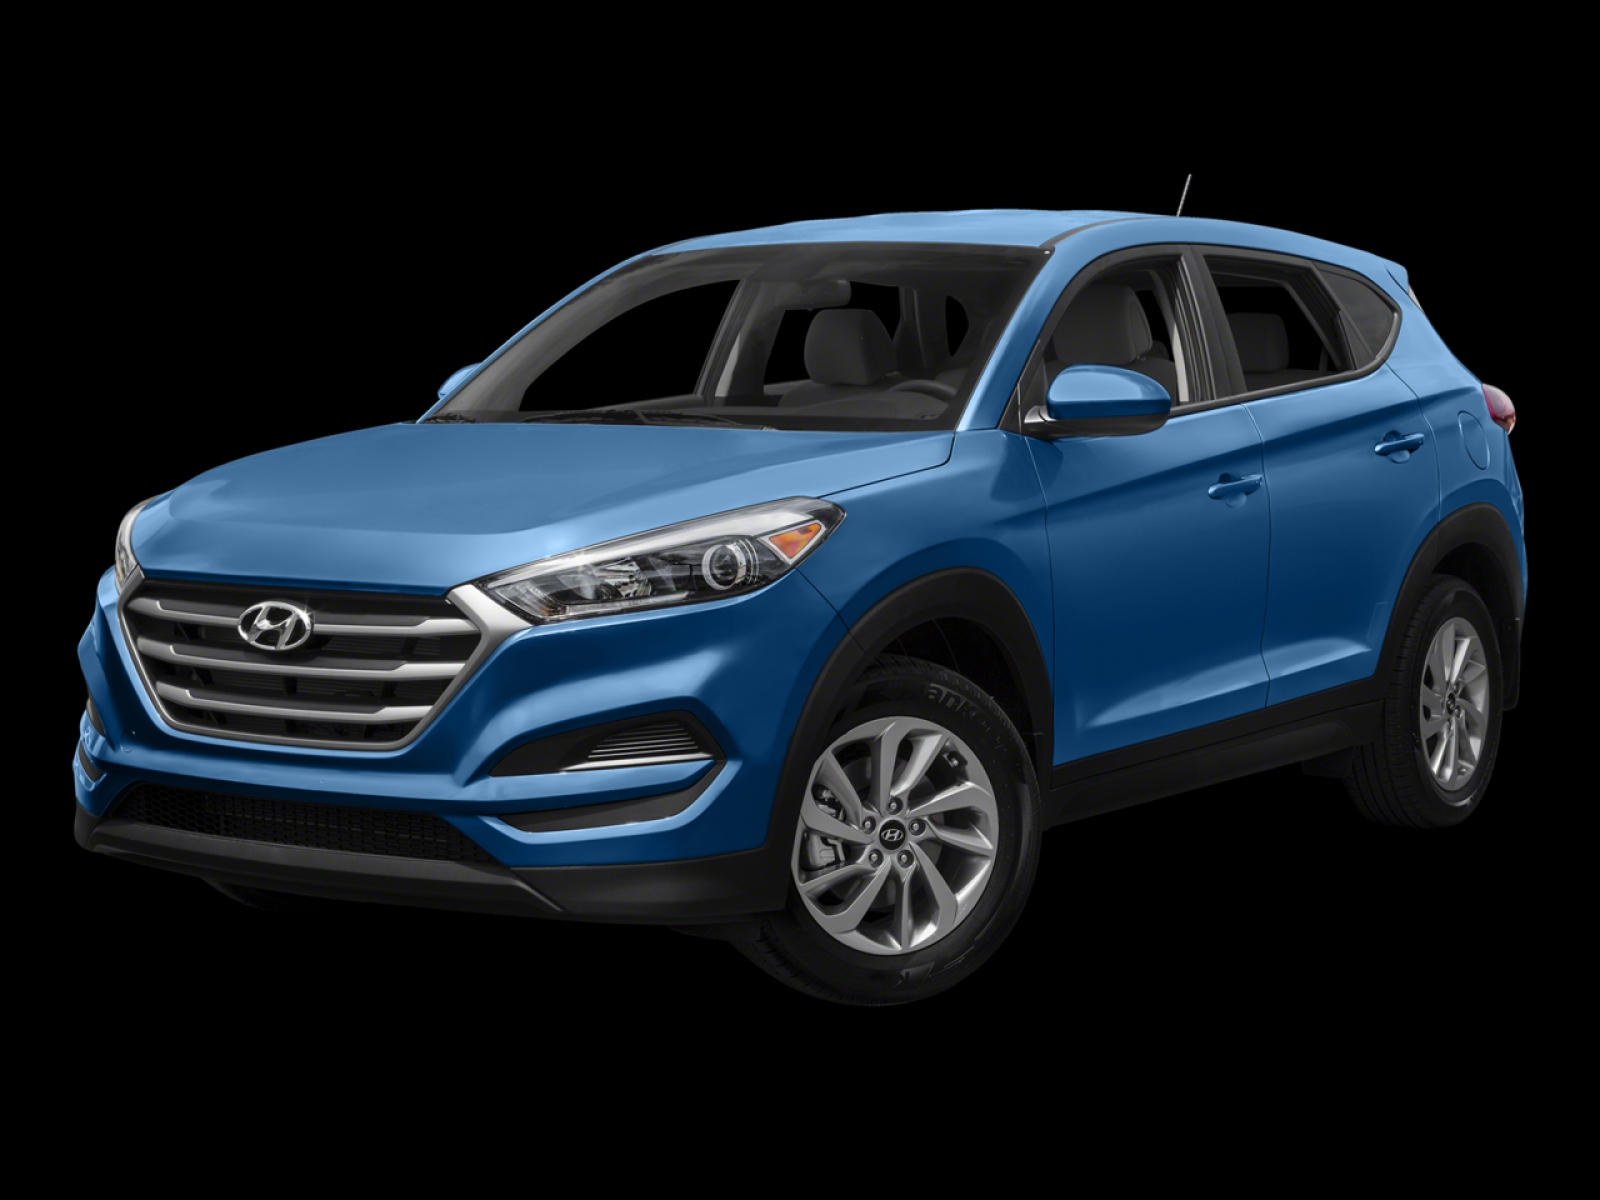 hyundai tucson 2017 hd wallpapers. Black Bedroom Furniture Sets. Home Design Ideas